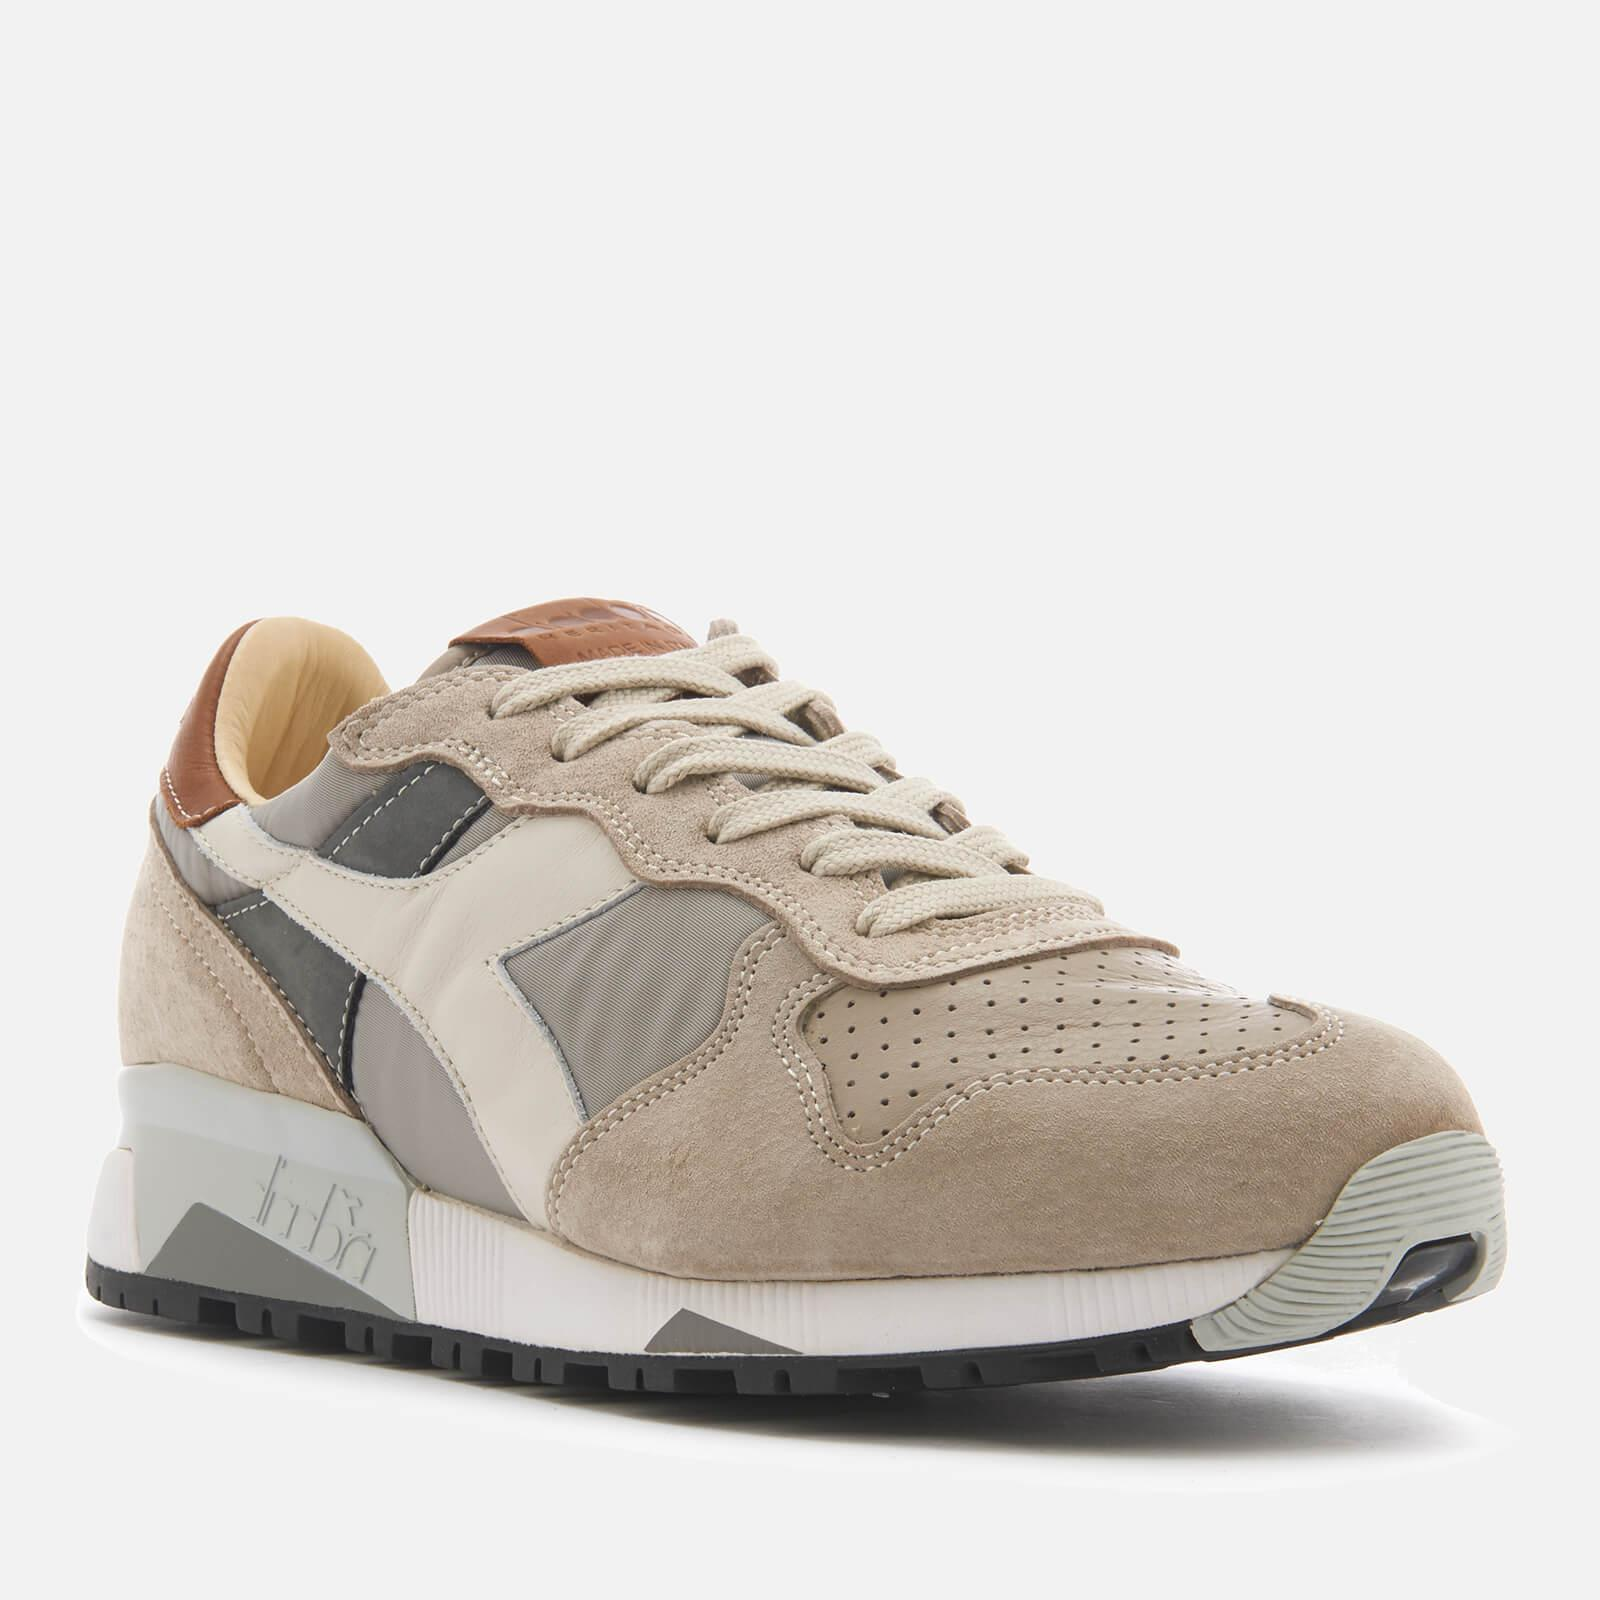 compilare carta trattino  Diadora Heritage Men's Trident 90 Nyl Leather/perforated Runner Trainers in  Grey (Gray) for Men - Lyst